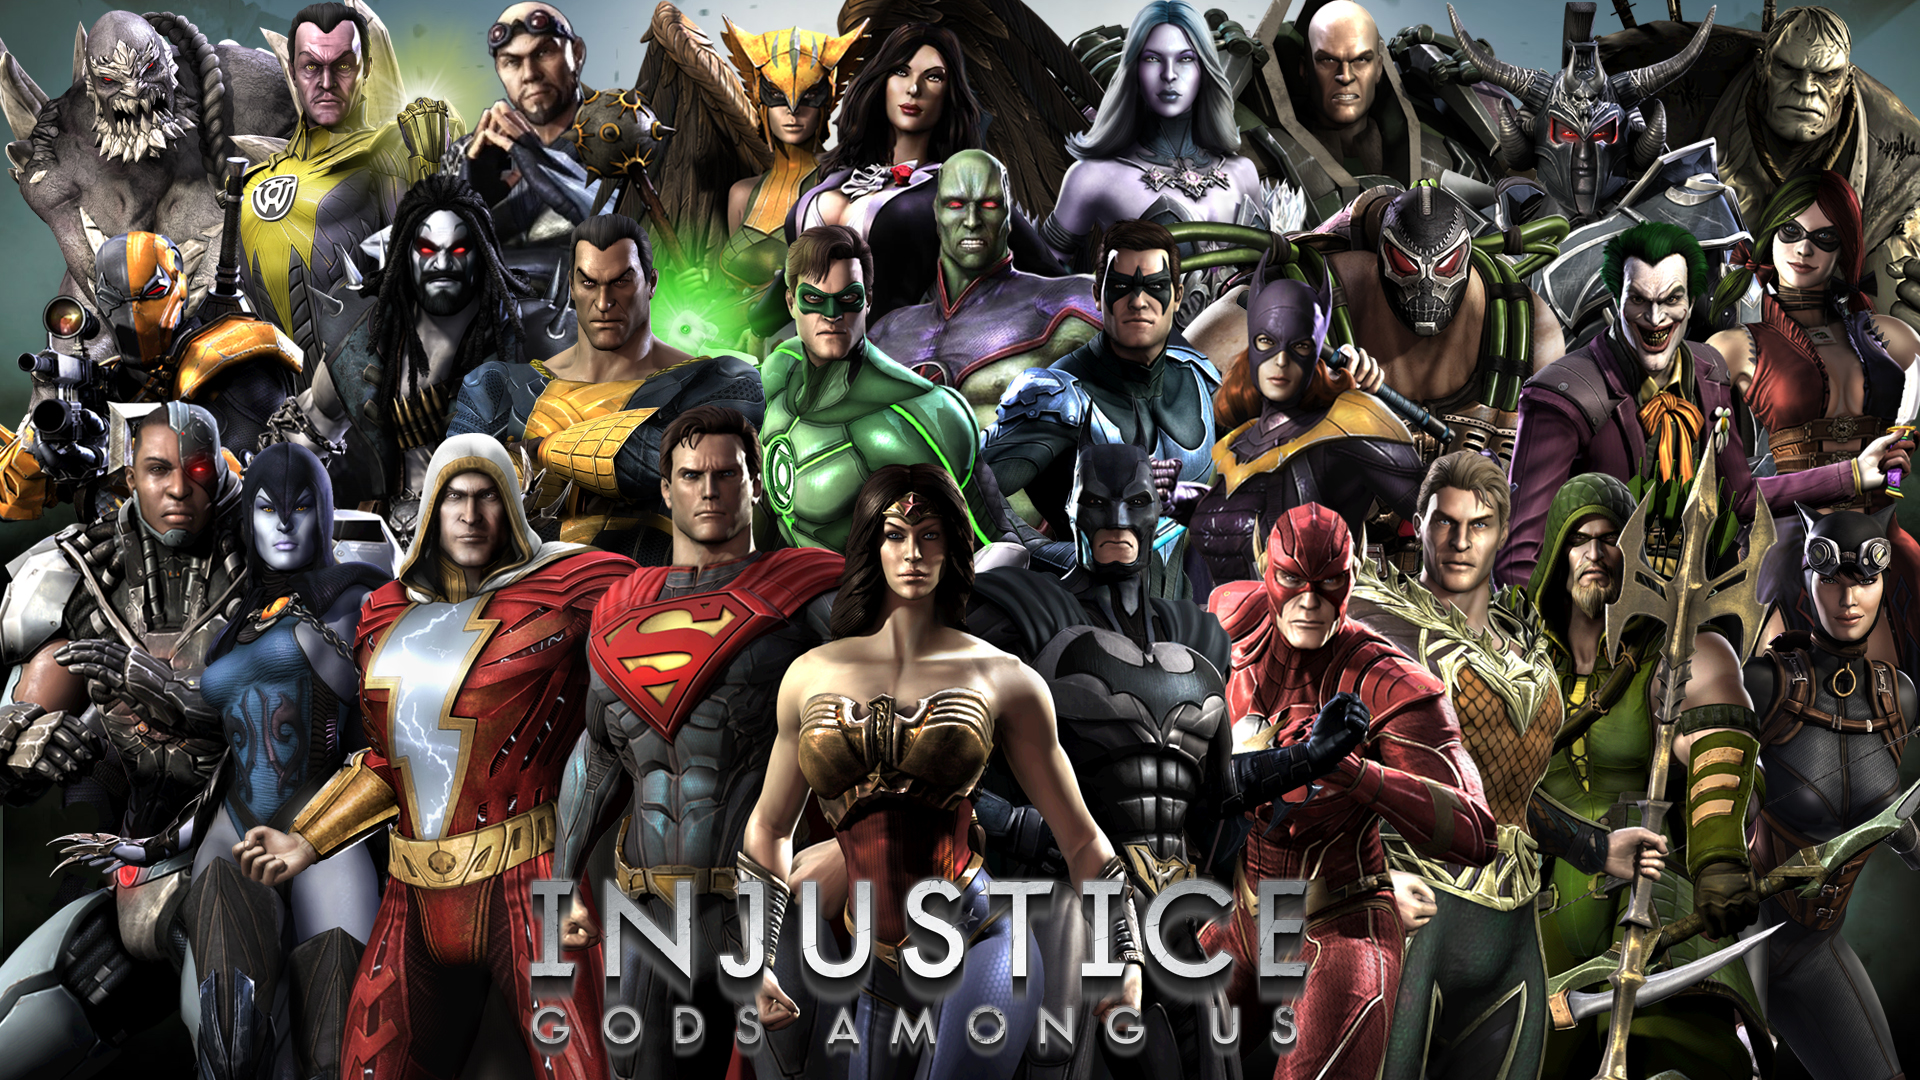 Injustice Gods Among Us Hd Wallpaper Background Image 1920x1080 Id 675927 Wallpaper Abyss